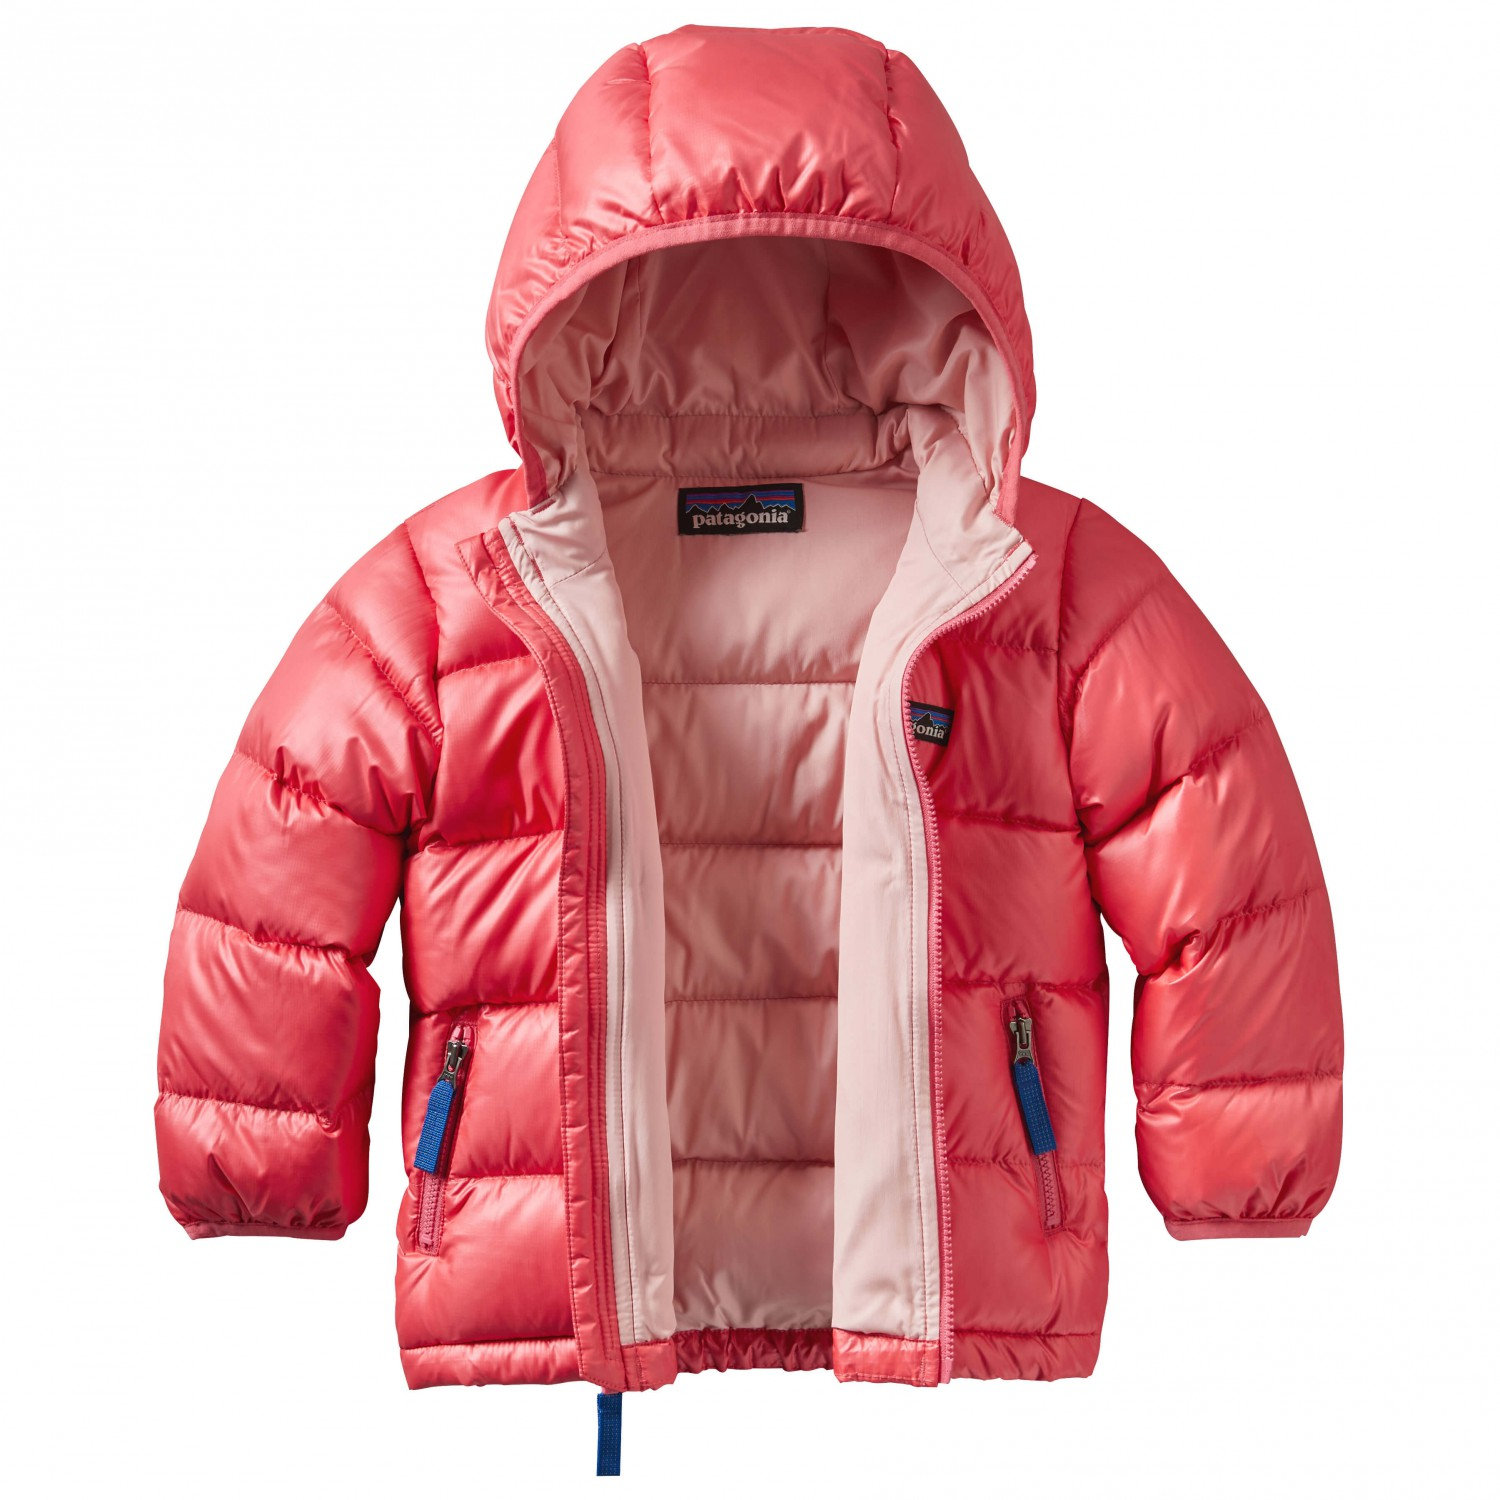 3t North Face Jacket